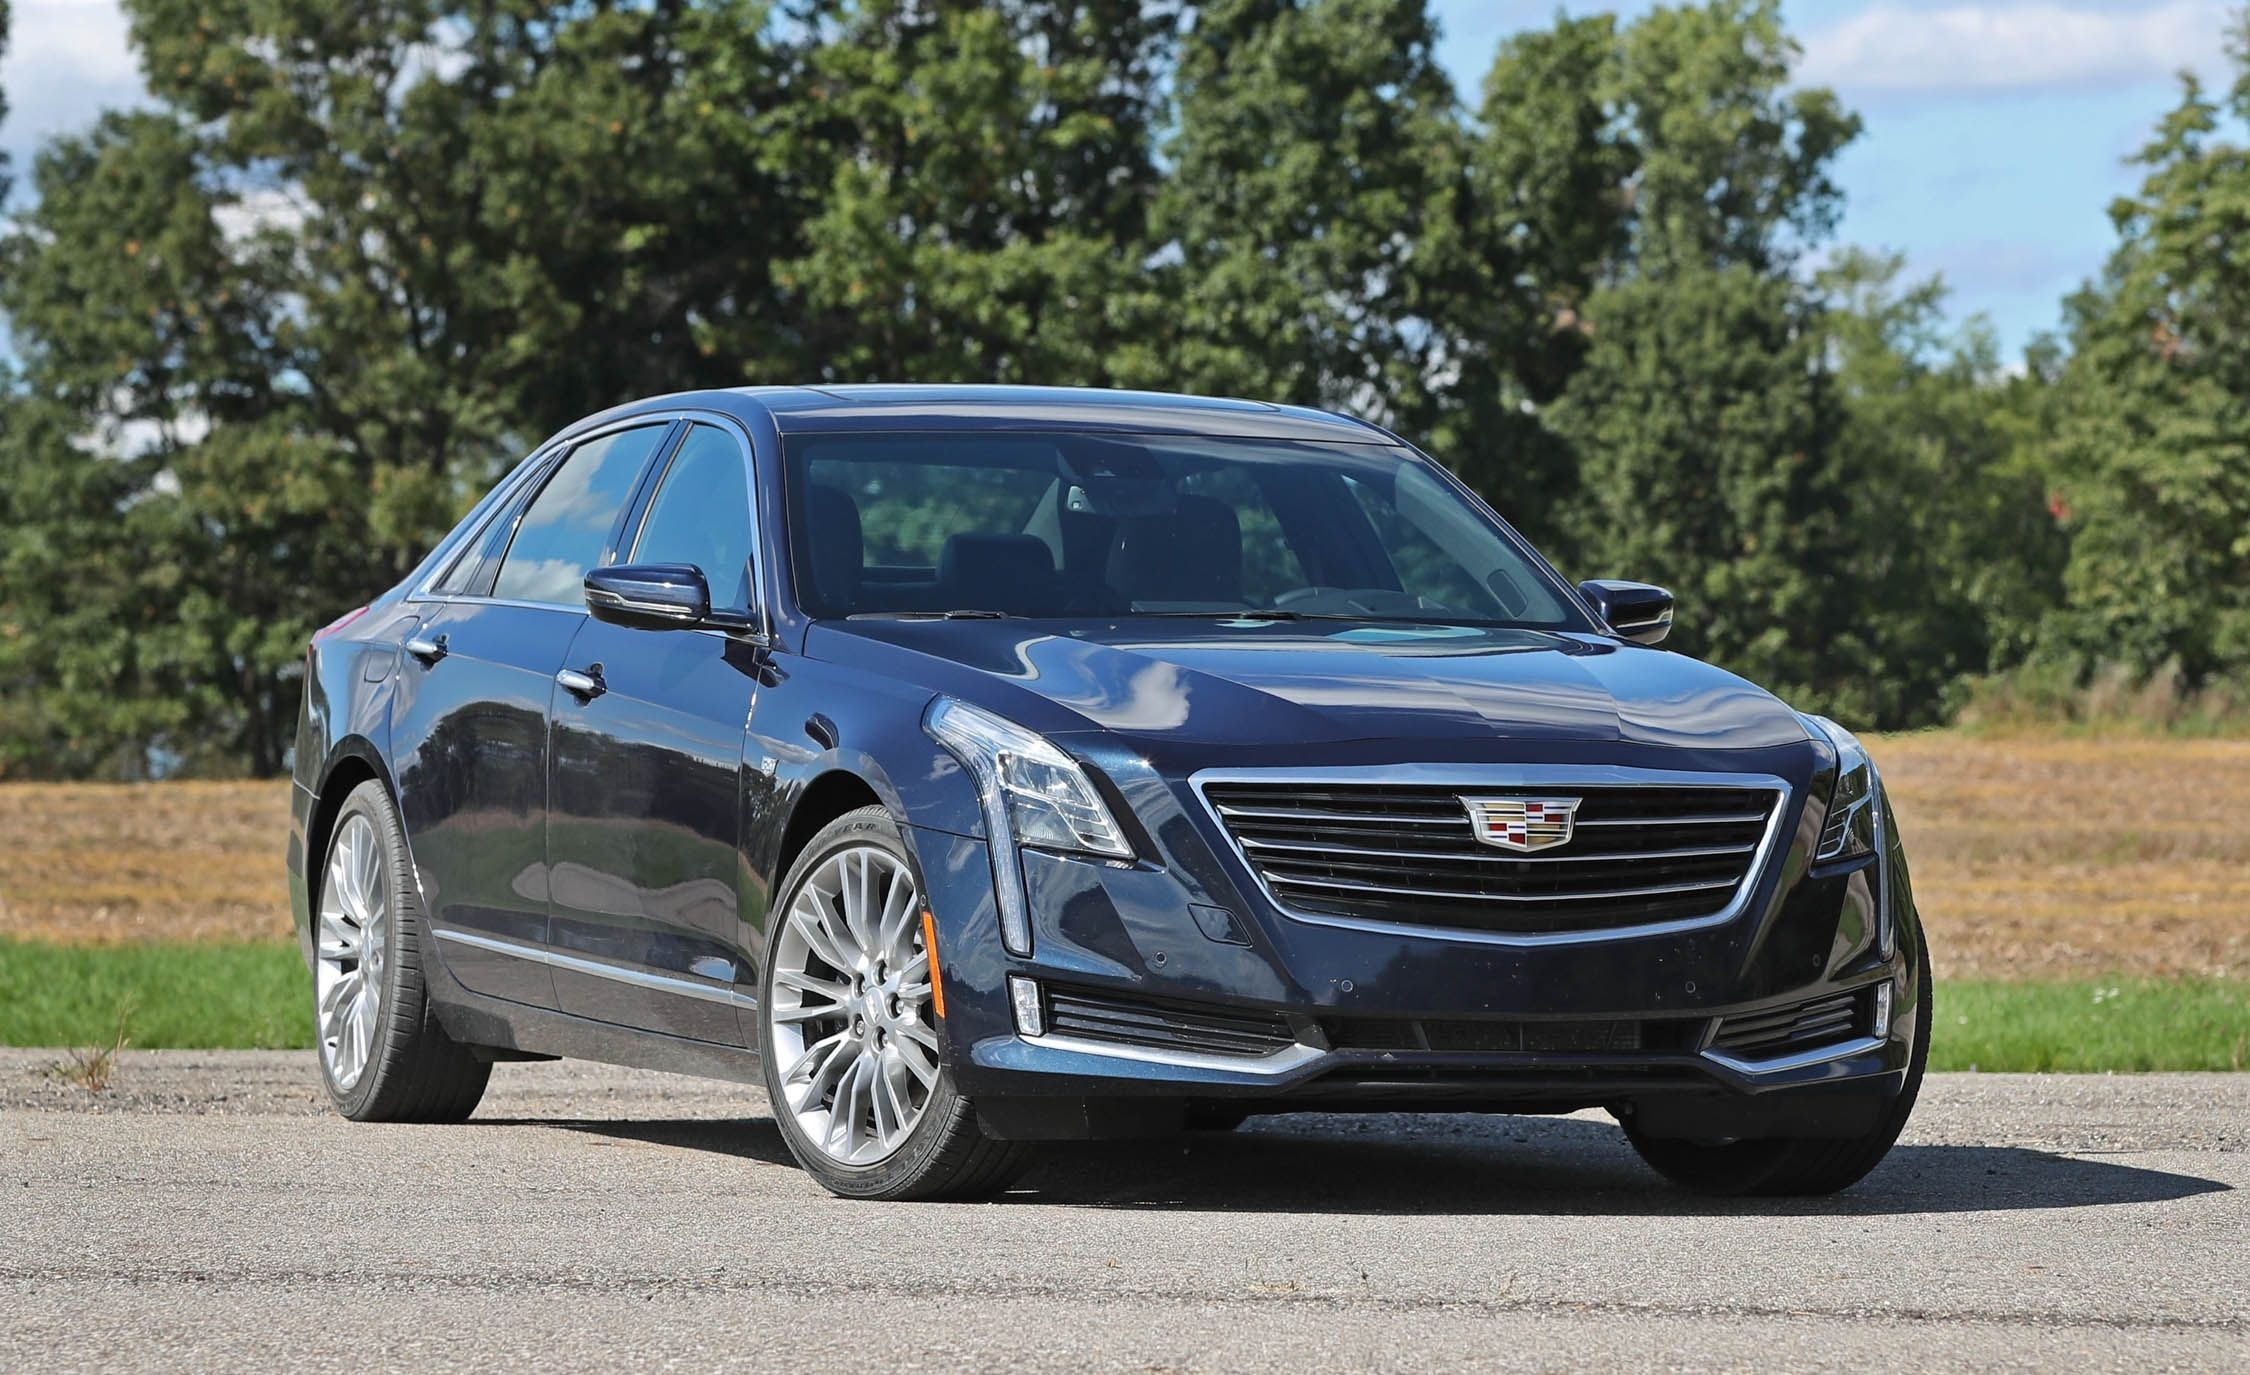 12 New-Car Lease Deals to Make Your Memorial Day Weekend - Slide 12